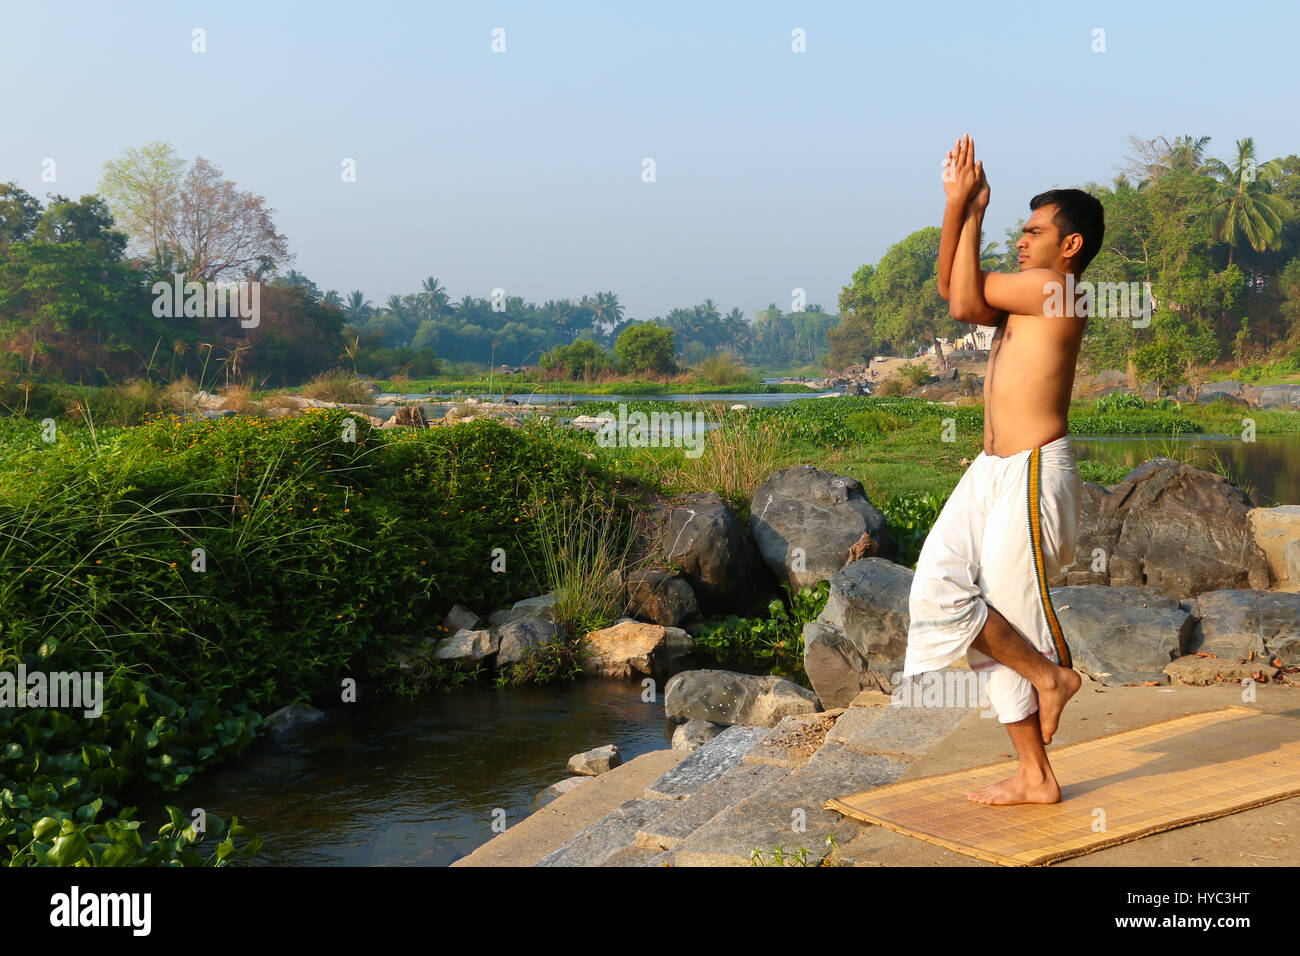 Indian man practicing yoga next to a river  in South India. - Stock Image